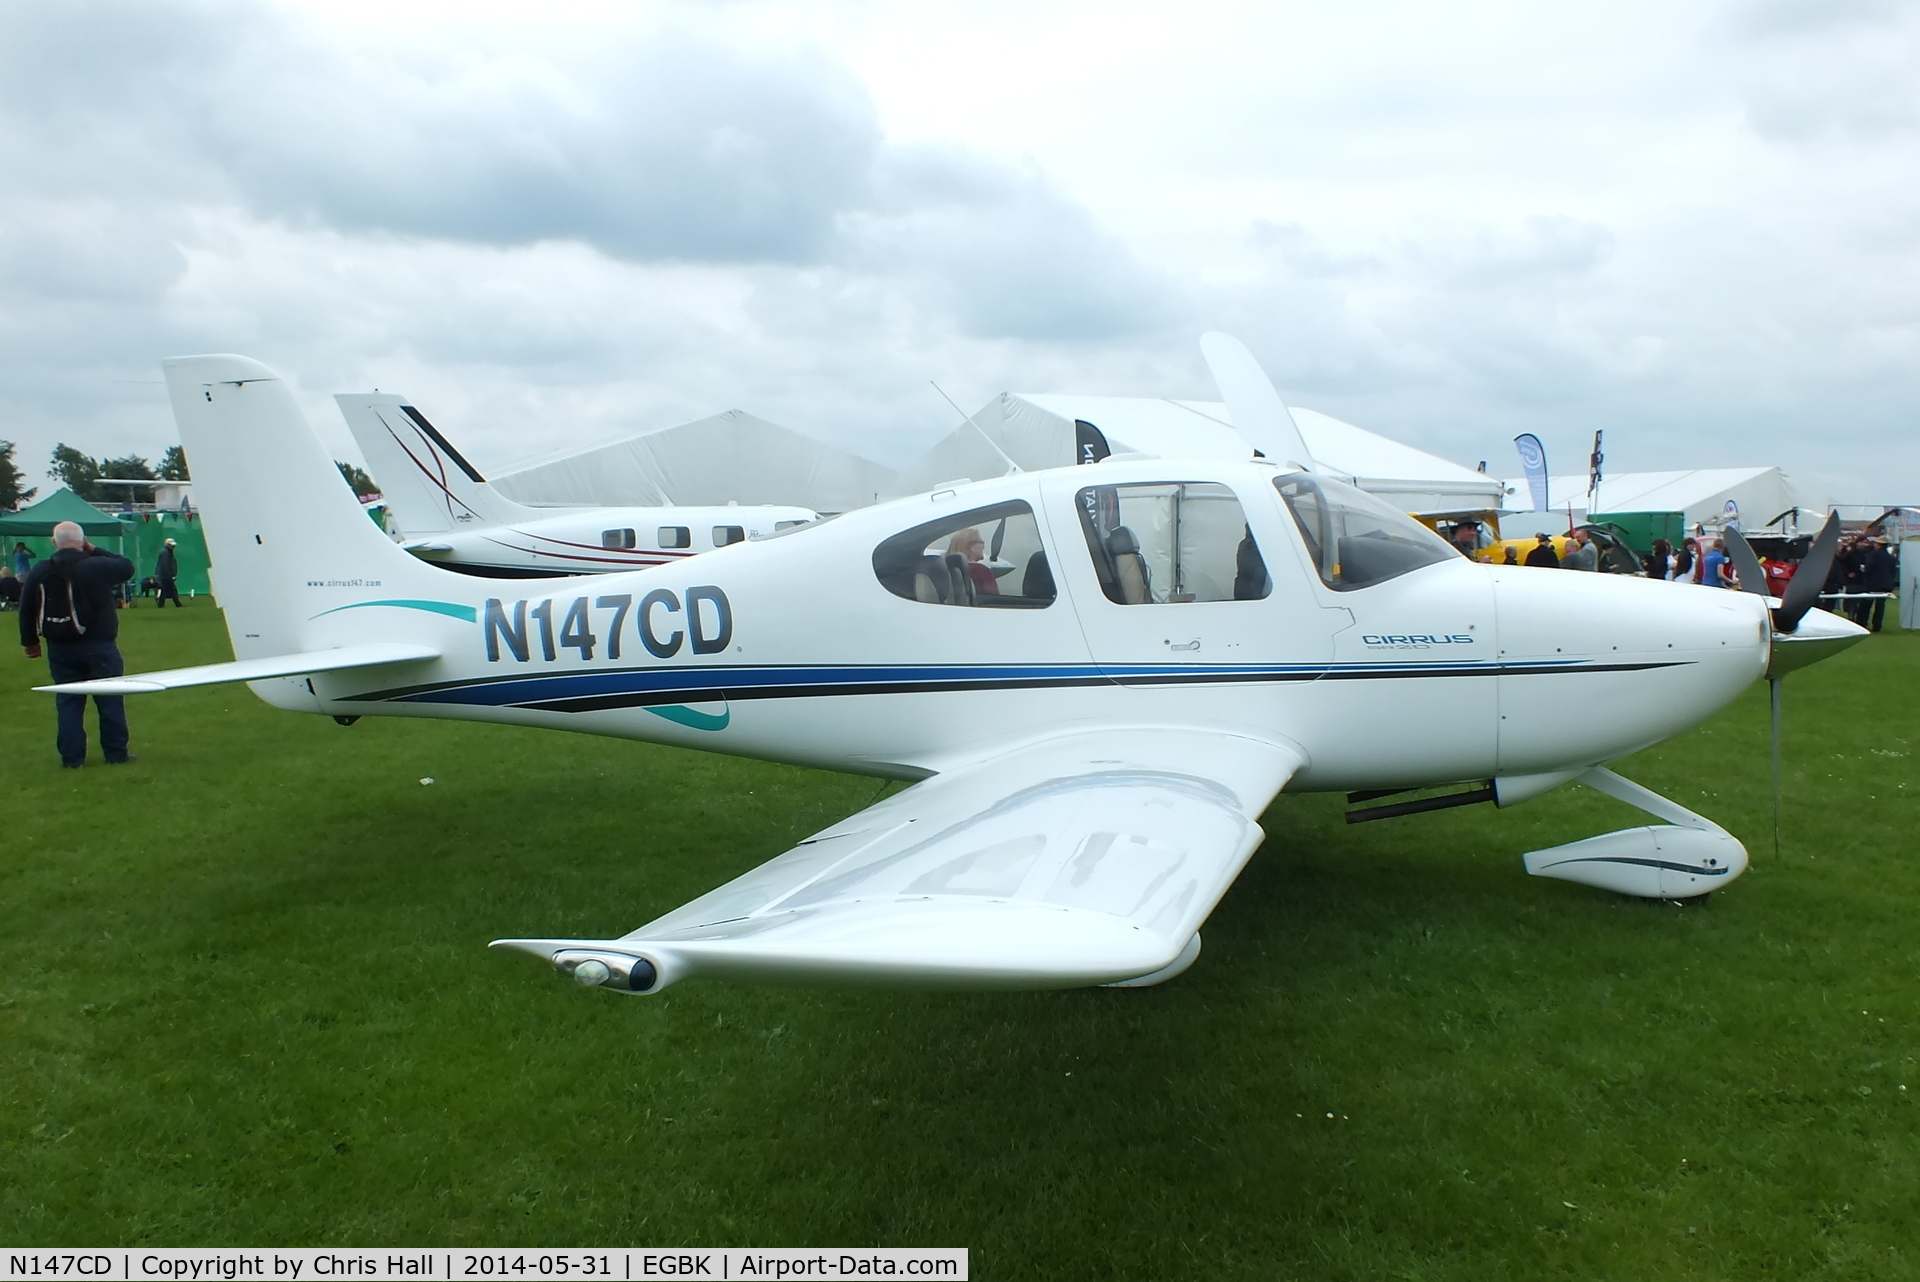 N147CD, 2000 Cirrus SR20 C/N 1043, at AeroExpo 2014